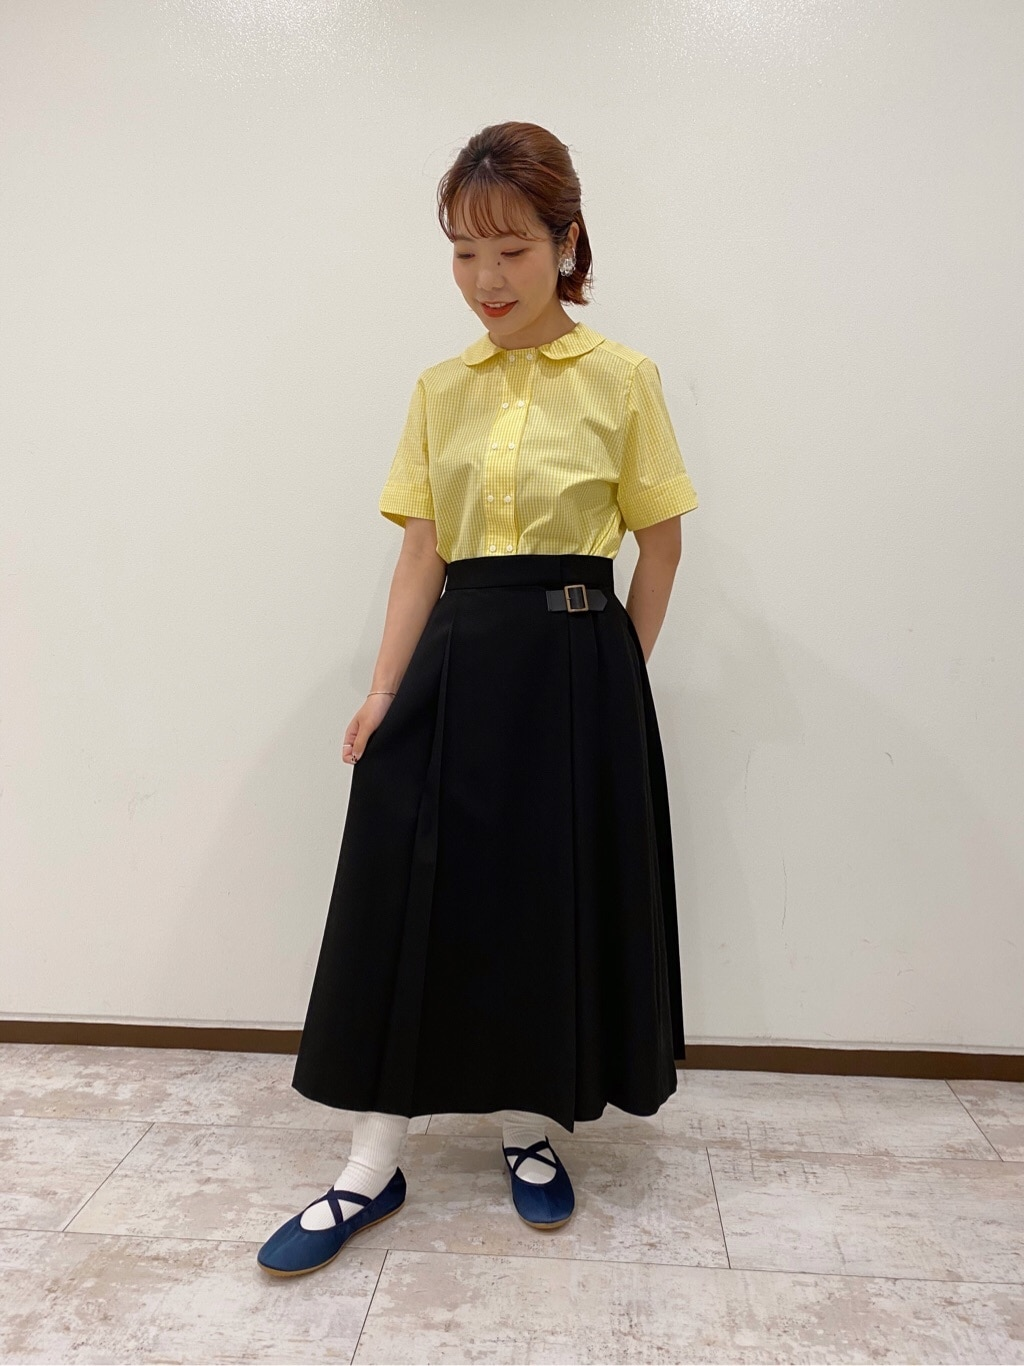 Dot and Stripes CHILD WOMAN 新宿ミロード 身長:153cm 2020.04.22